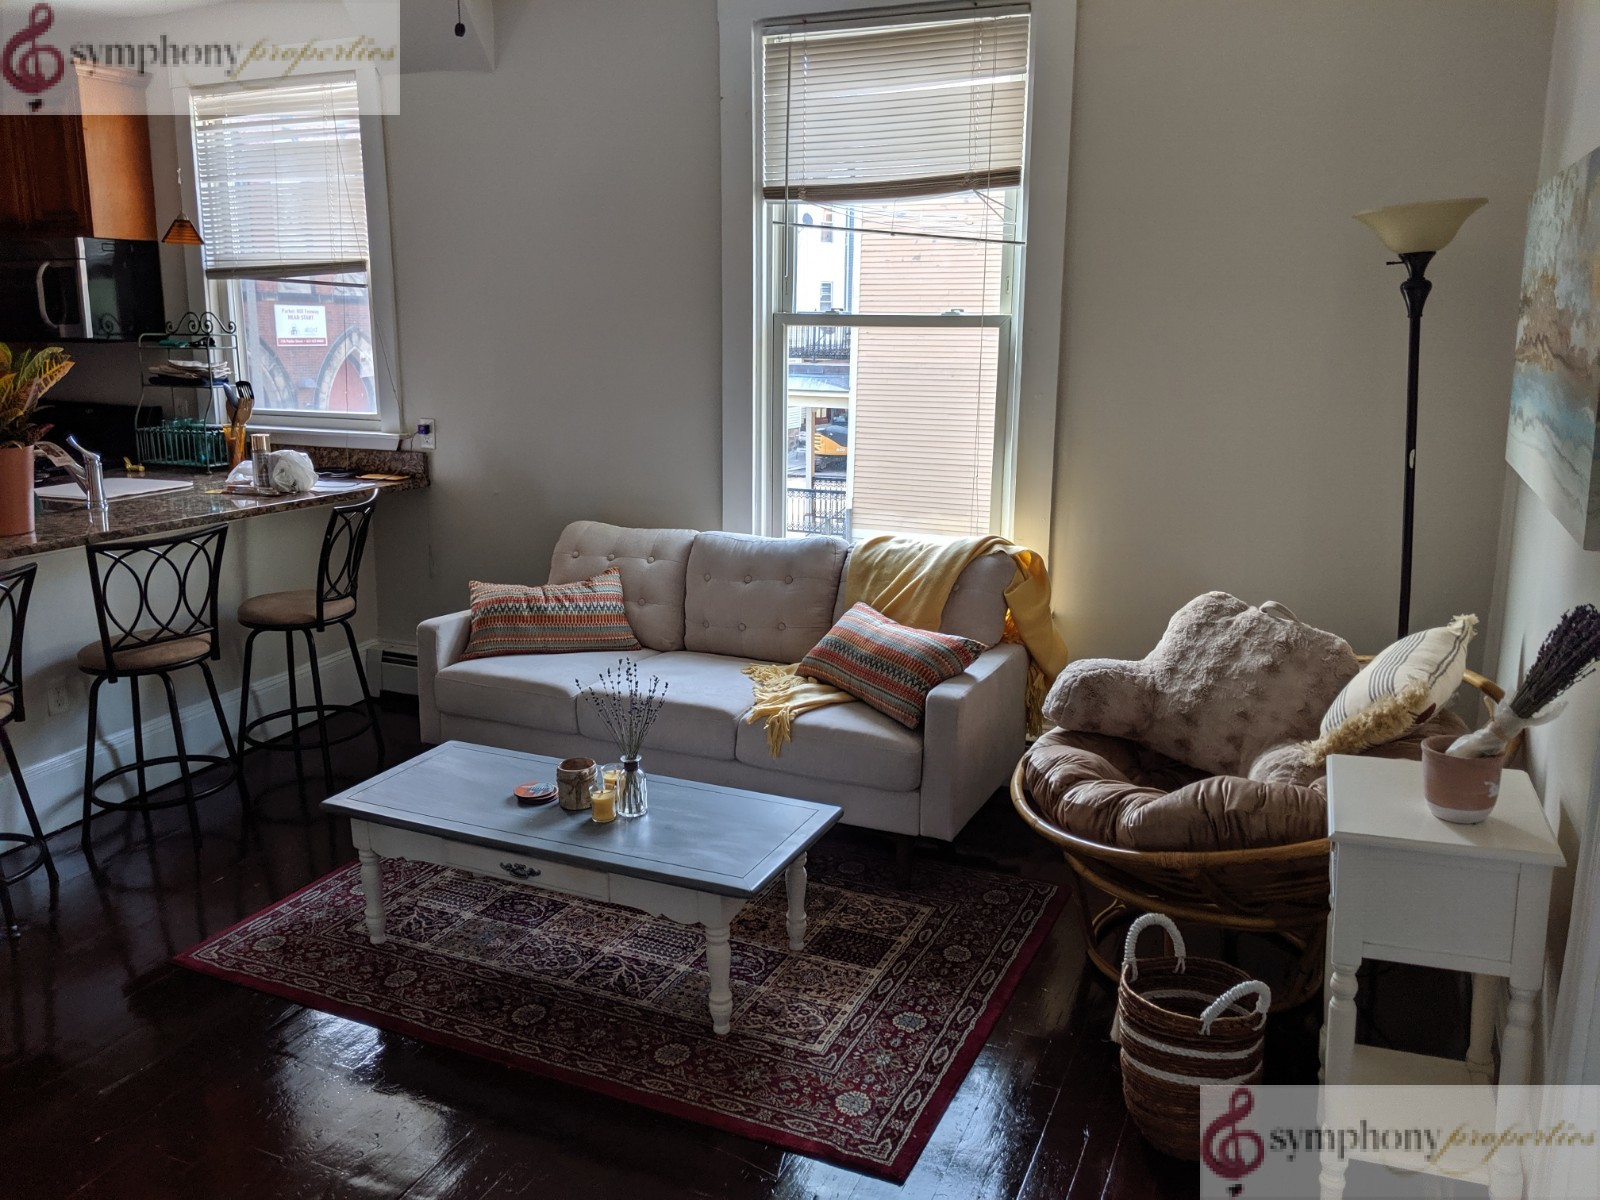 4 Beds, 1 Bath apartment in Boston, Mission Hill for $4,000